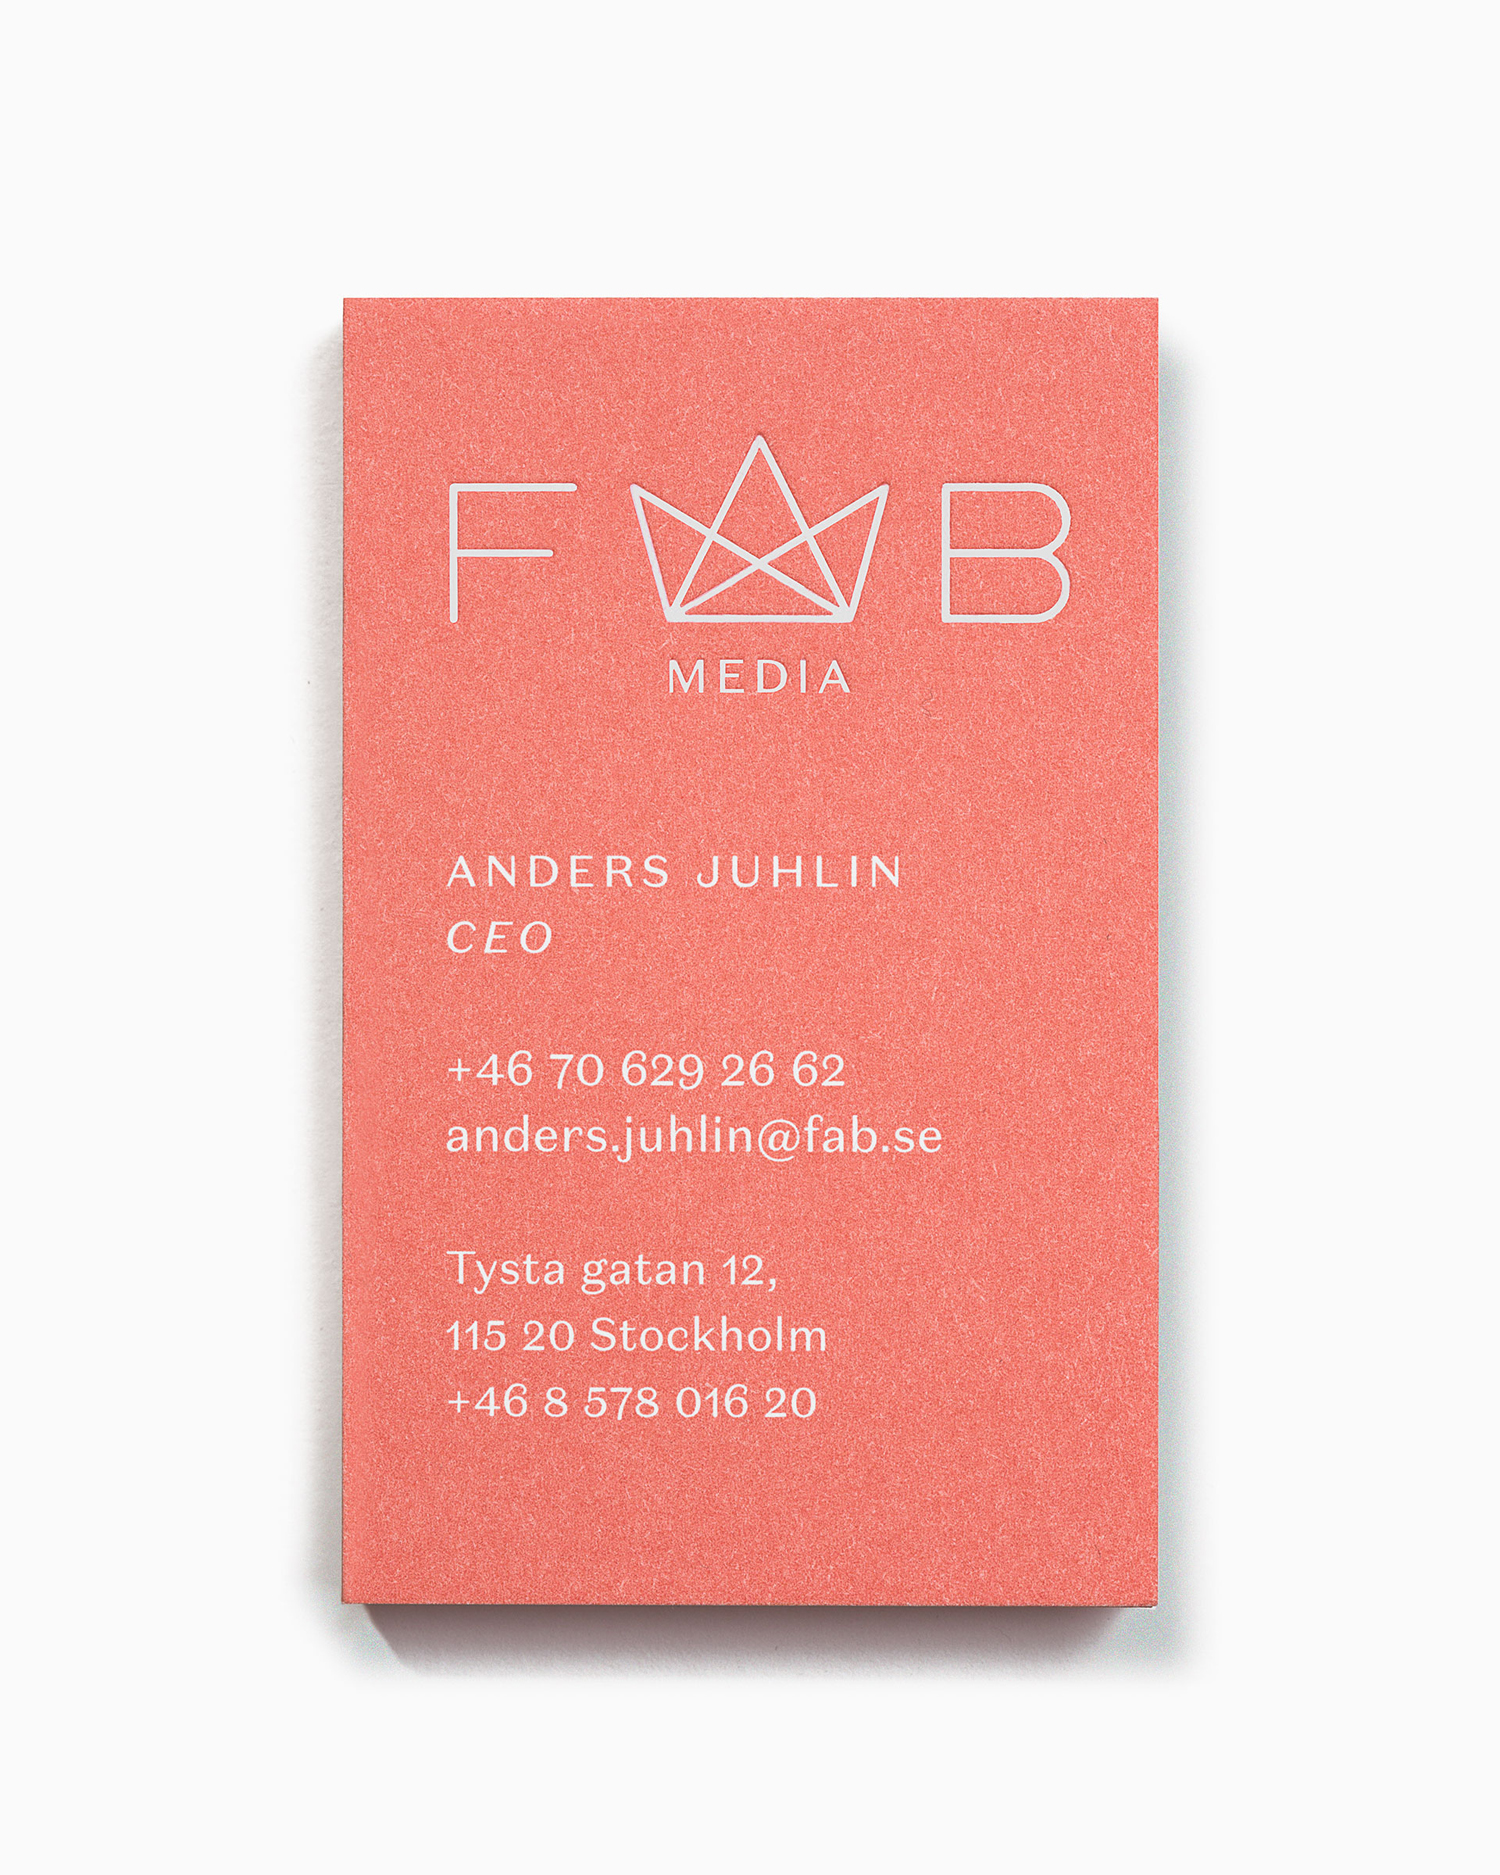 Logo and business card by Stockholm-based Bedow for Swedish media company Fab Media